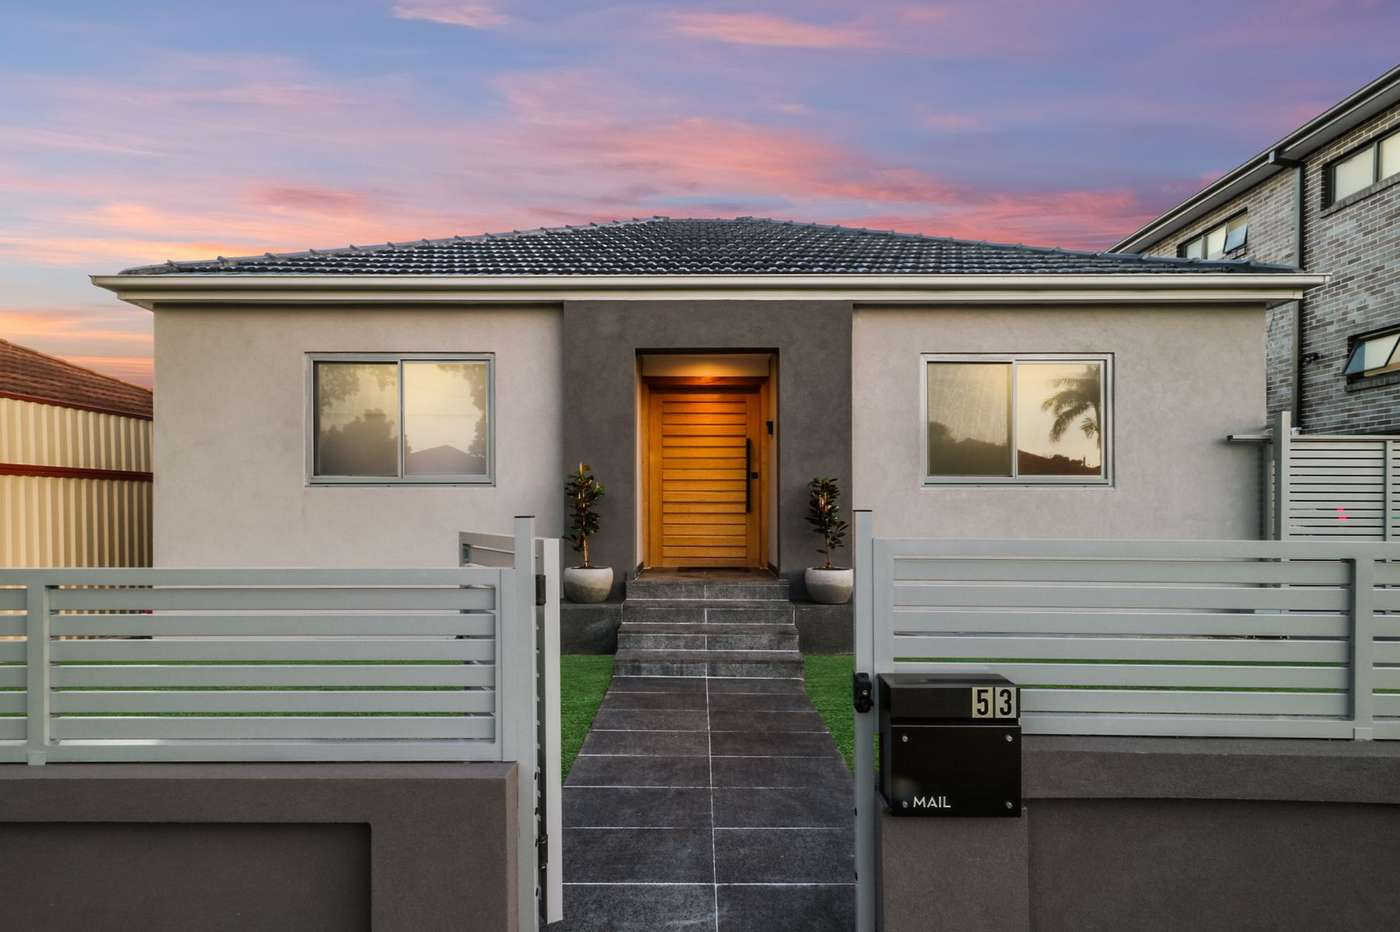 Main view of Homely house listing, Address available on request, Hurstville, NSW 2220